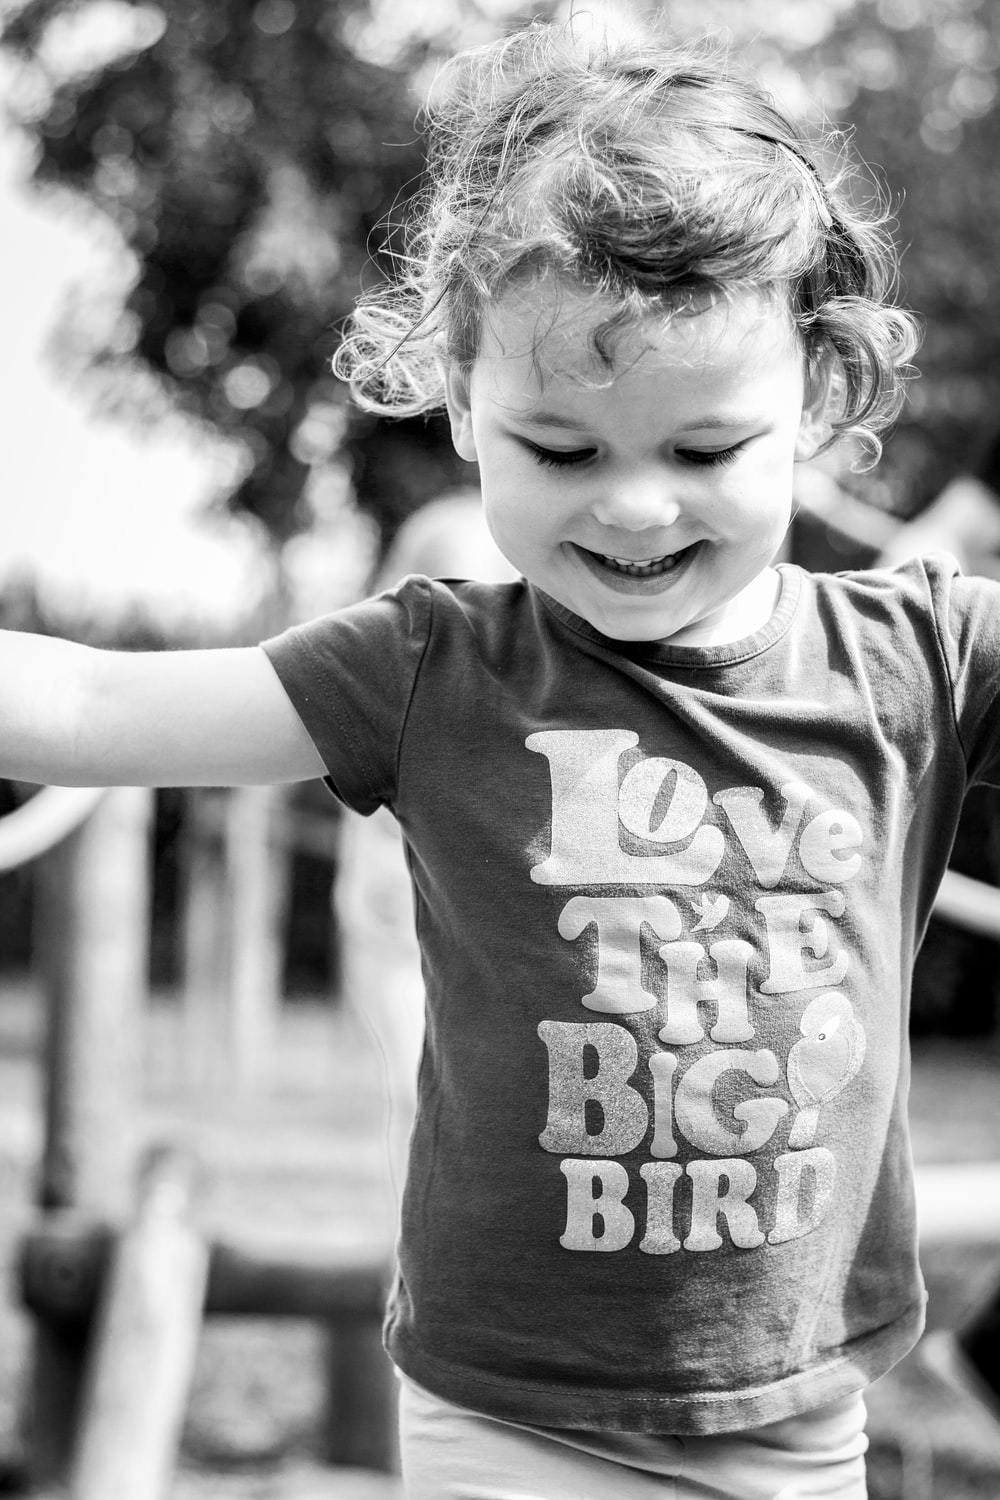 grayscale photo of girl in t-shirt